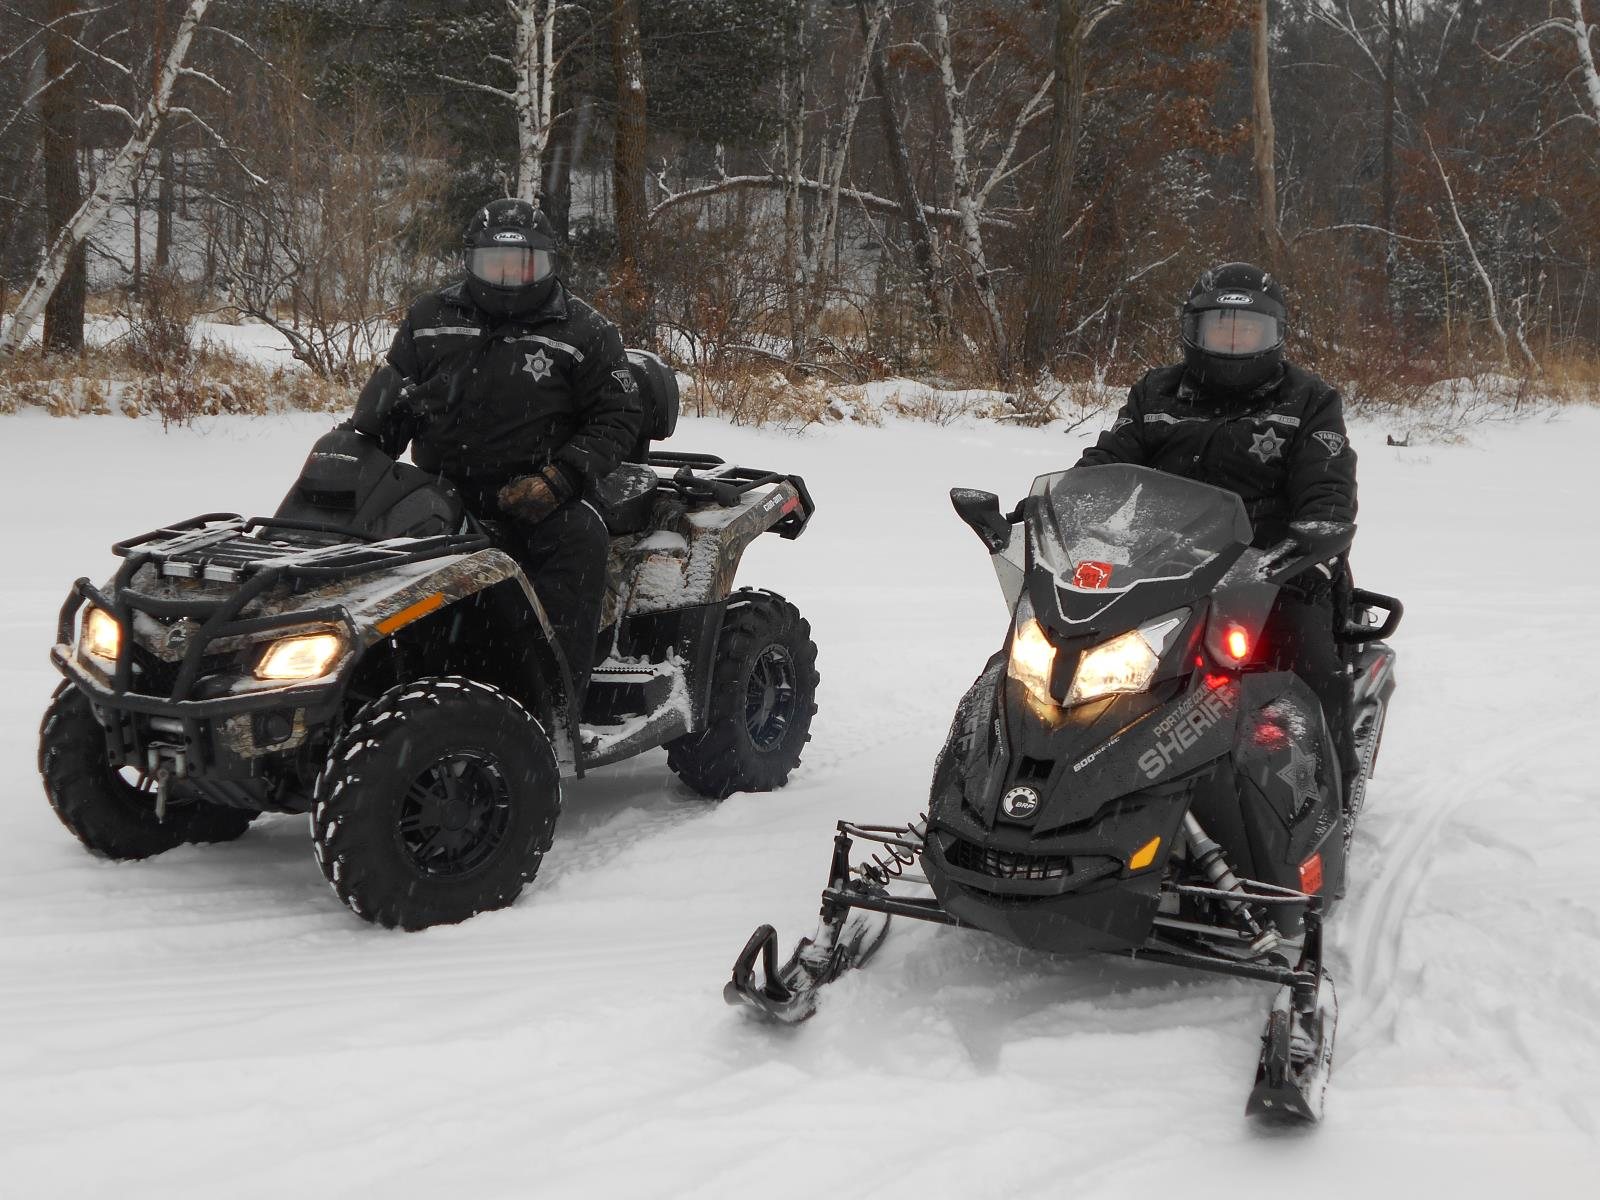 Snowmobile and ATV